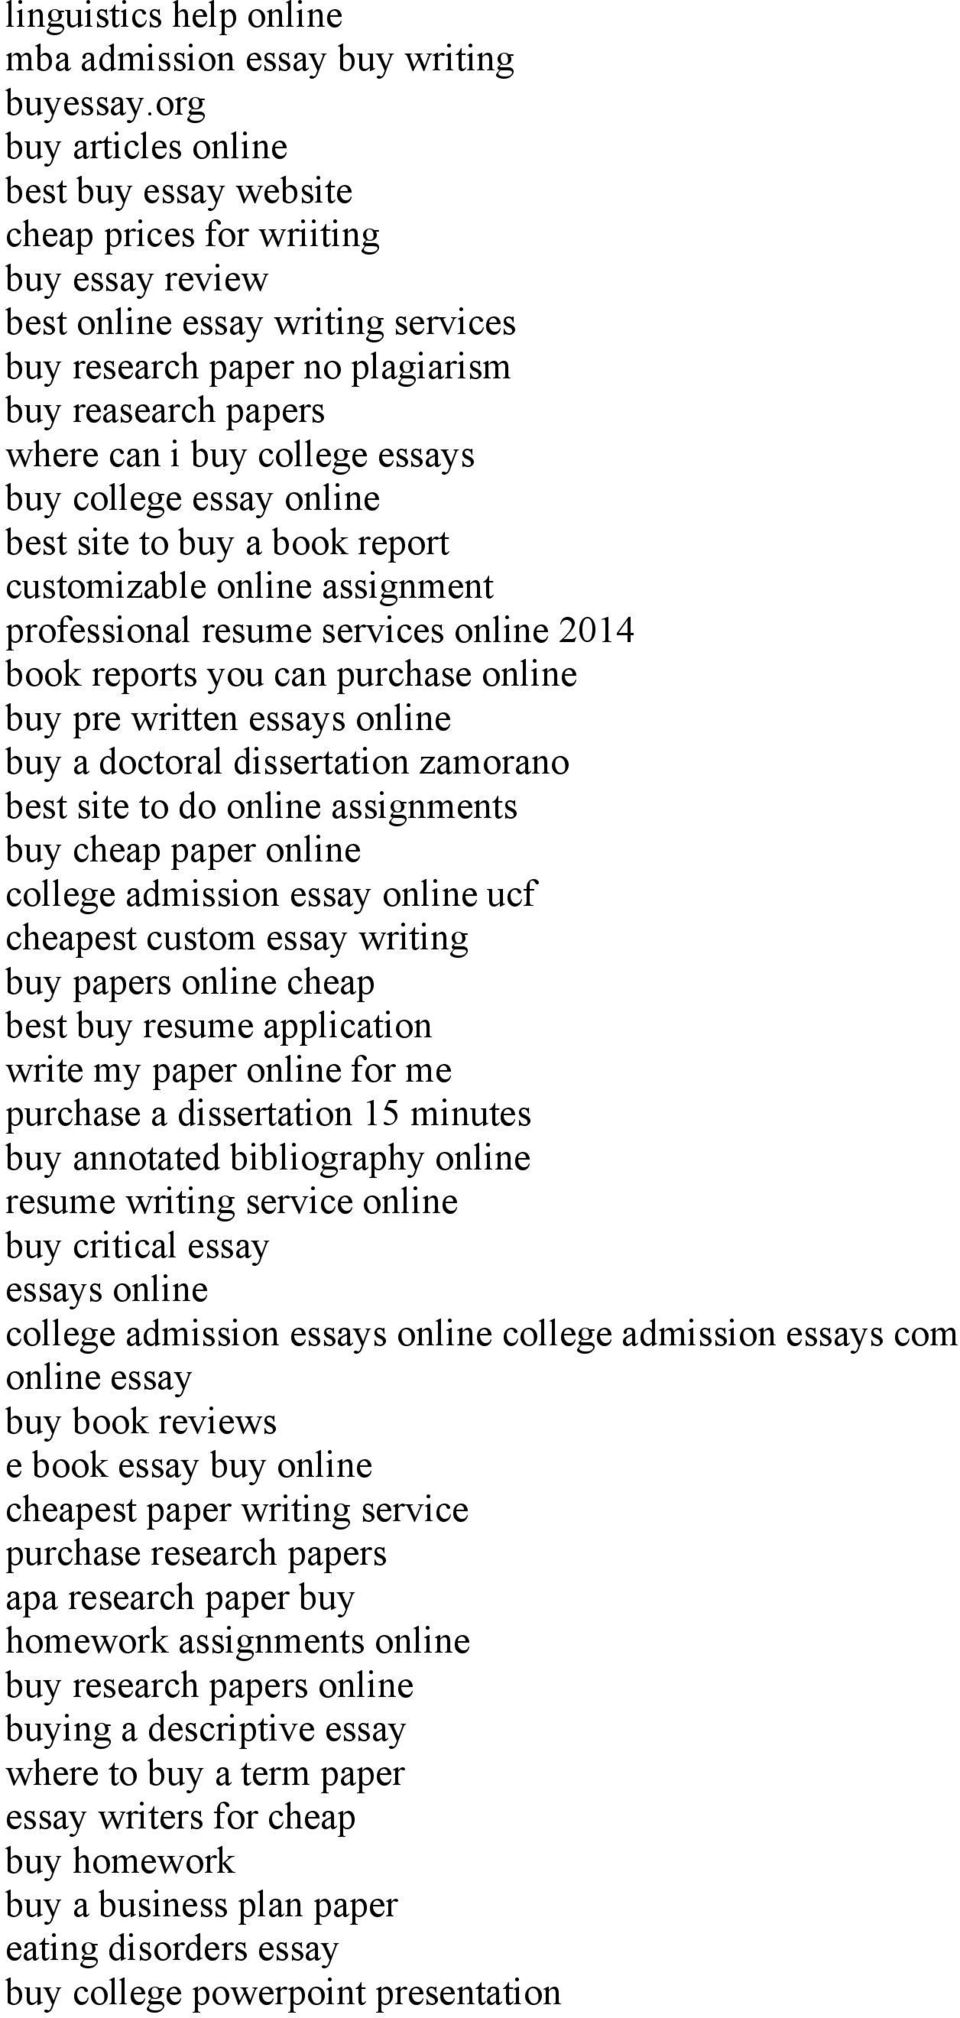 college essays buy college essay online best site to buy a book report customizable online assignment professional resume services online 2014 book reports you can purchase online buy pre written